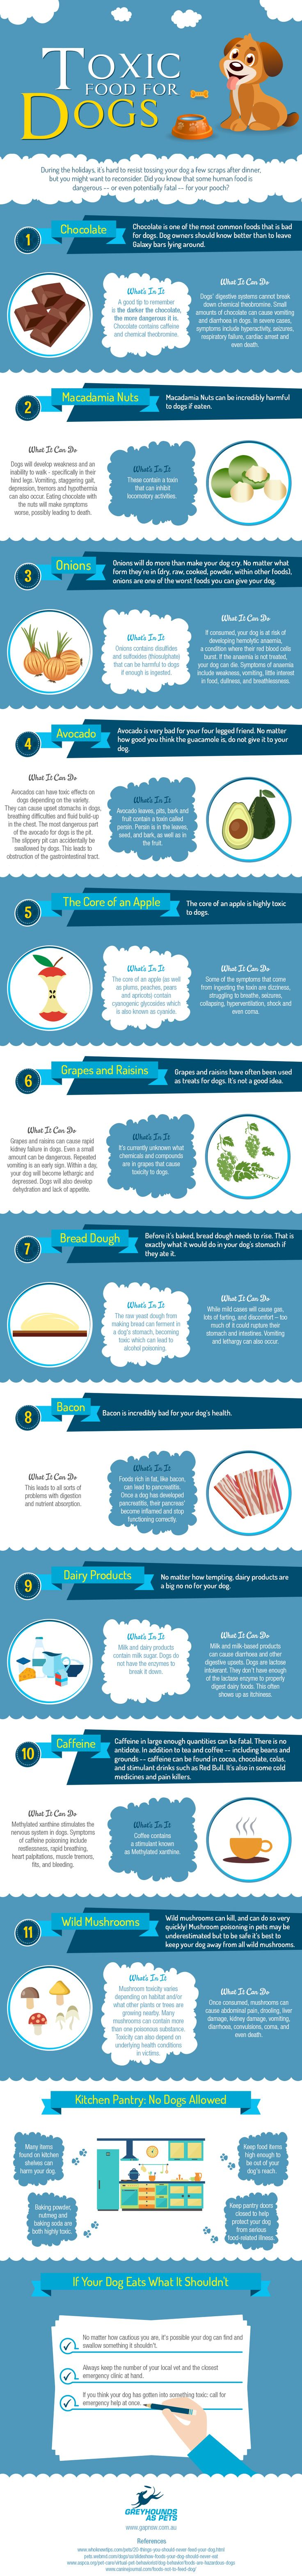 Toxic Foods for Your Dogs [Infographic] | Animal Bliss